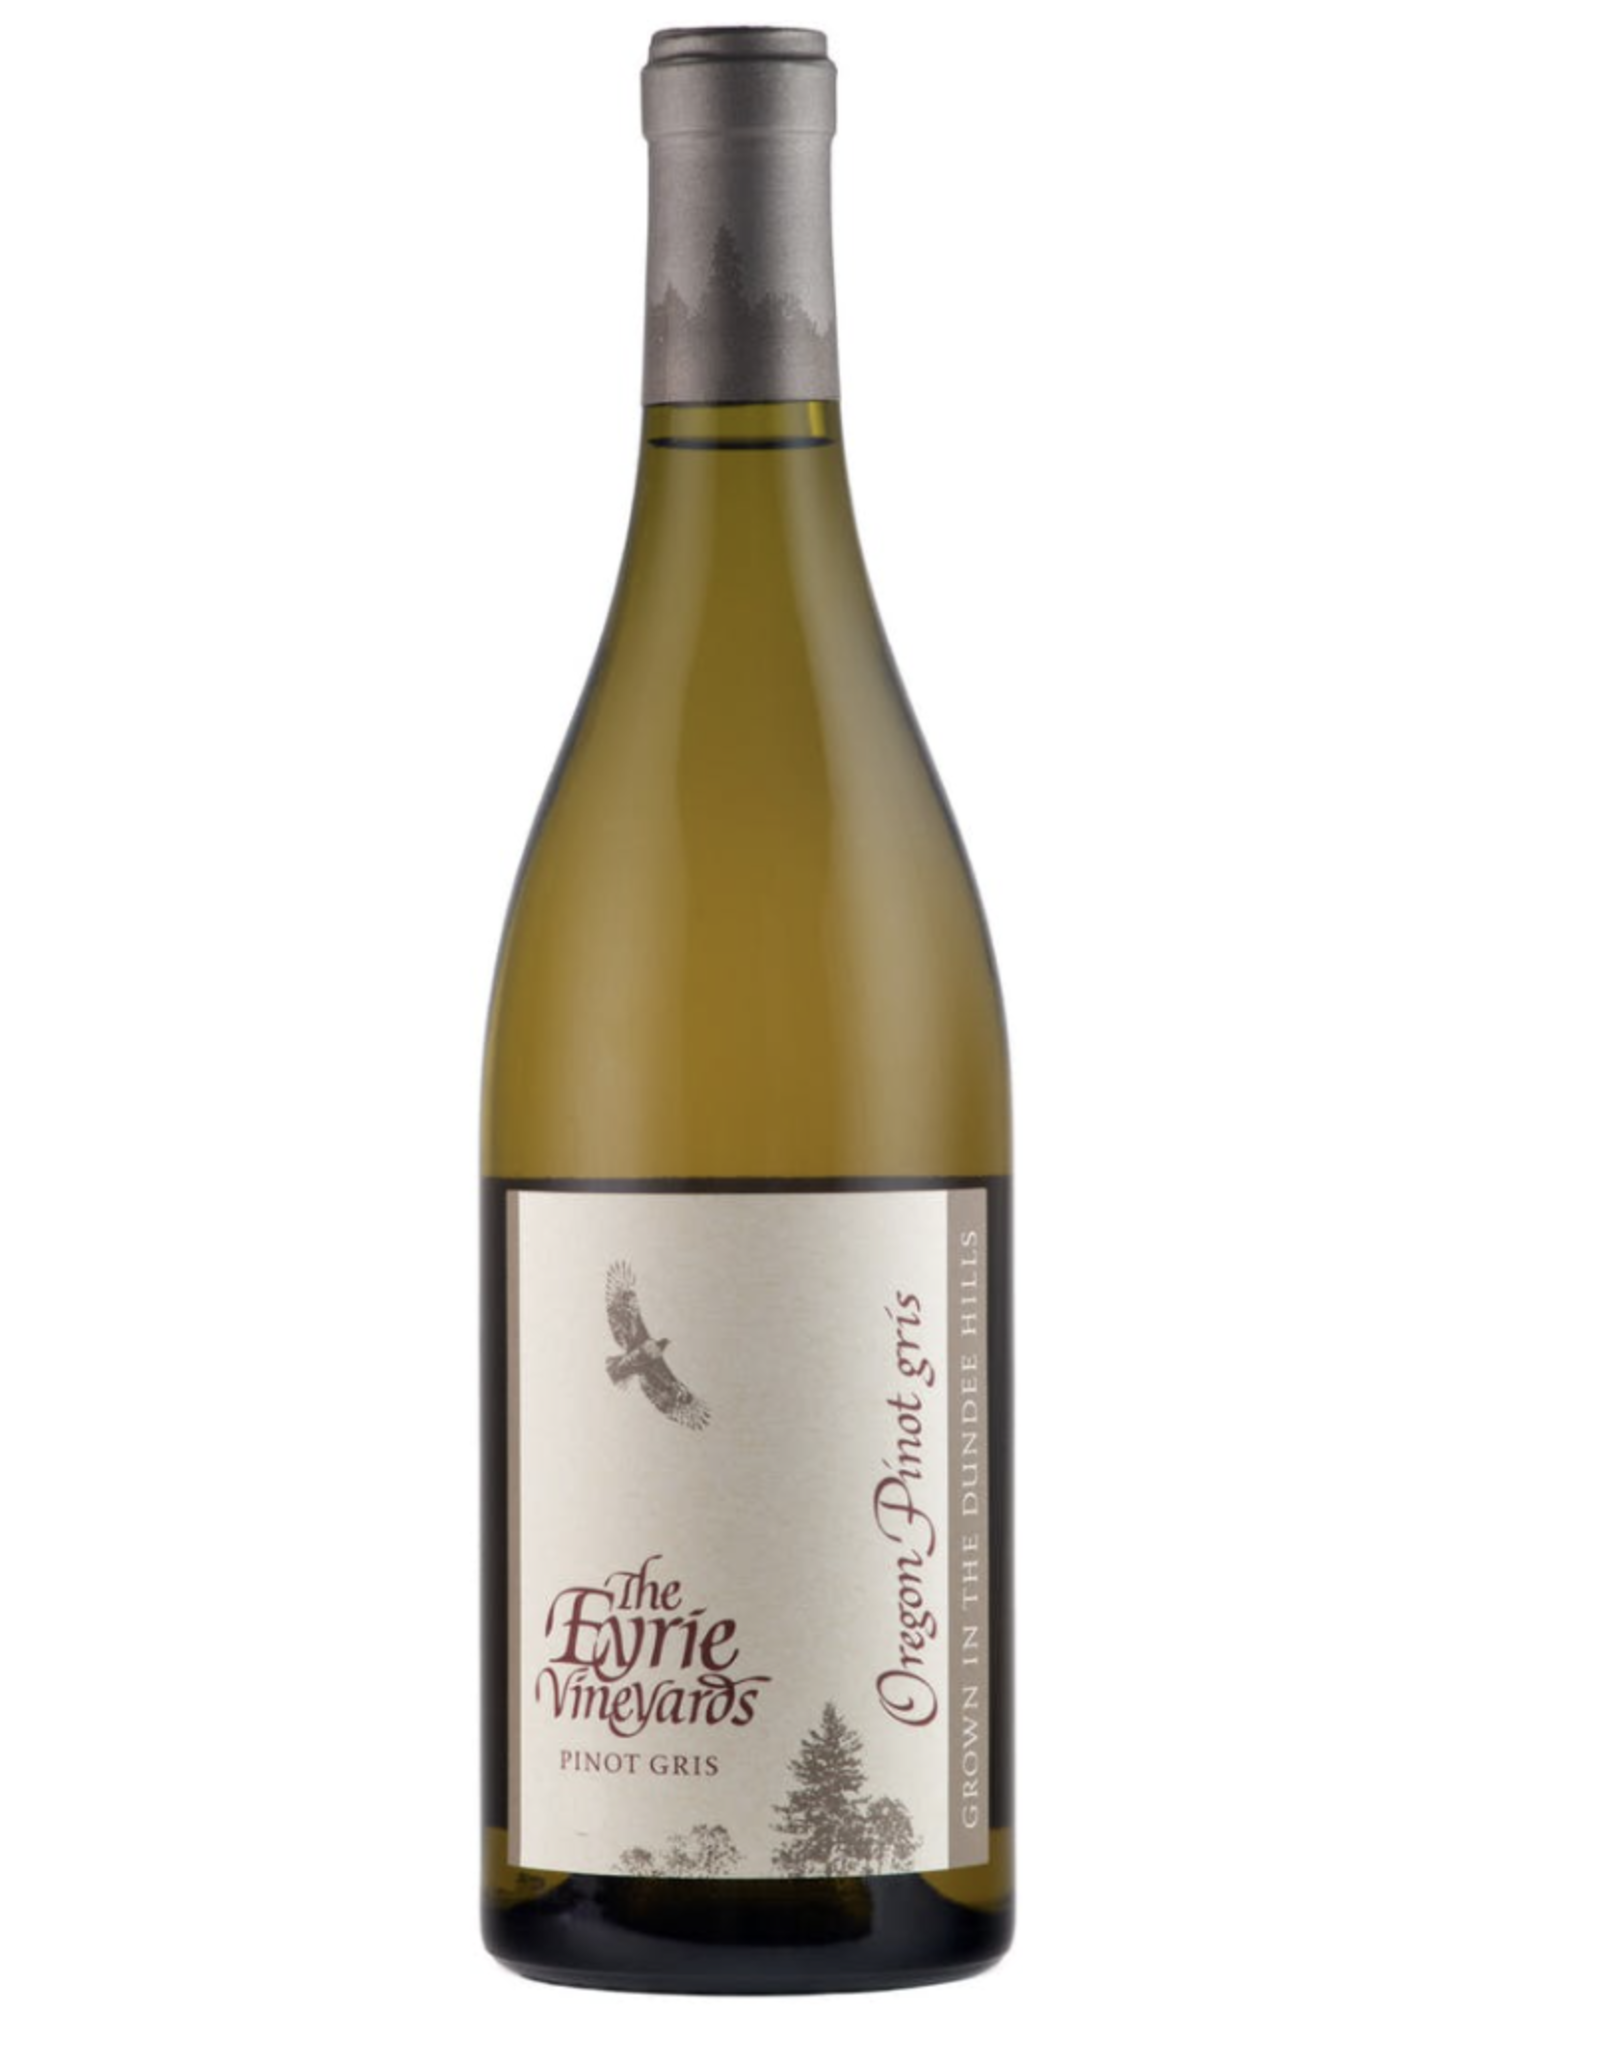 Eyrie Eyrie Pinot Gris Willamette Valley 2019